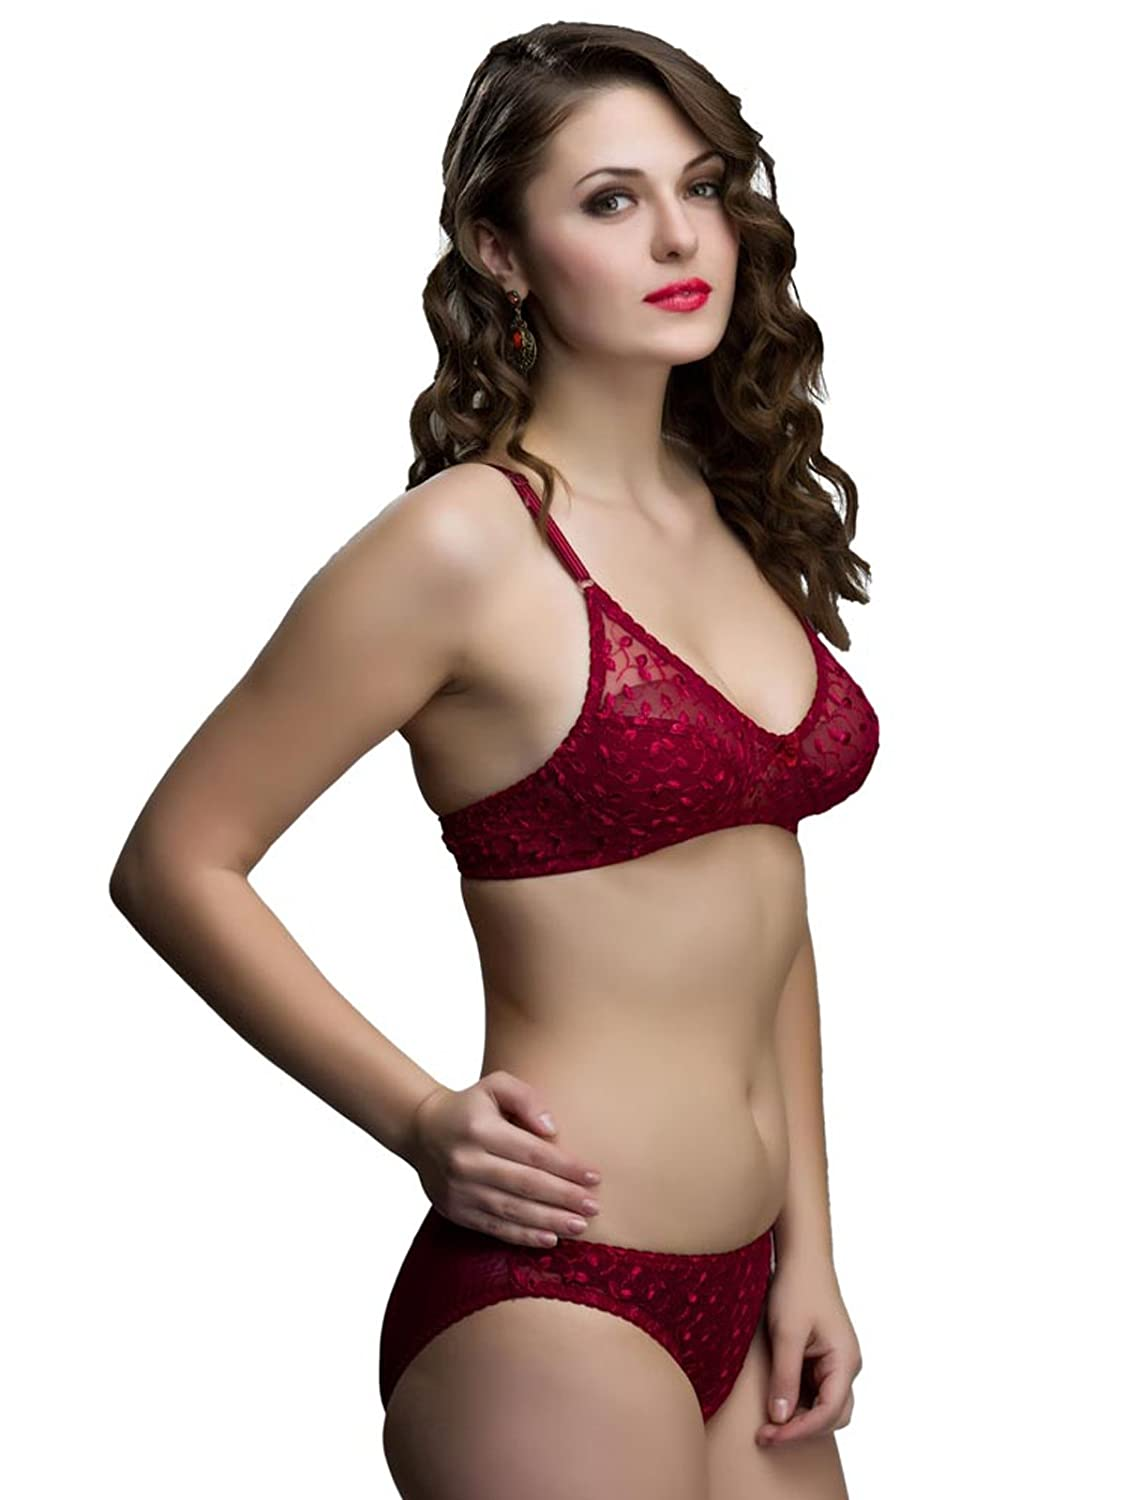 e3b69de3ac9 College Girl Womens Bra and Panty Set: Amazon.in: Clothing & Accessories